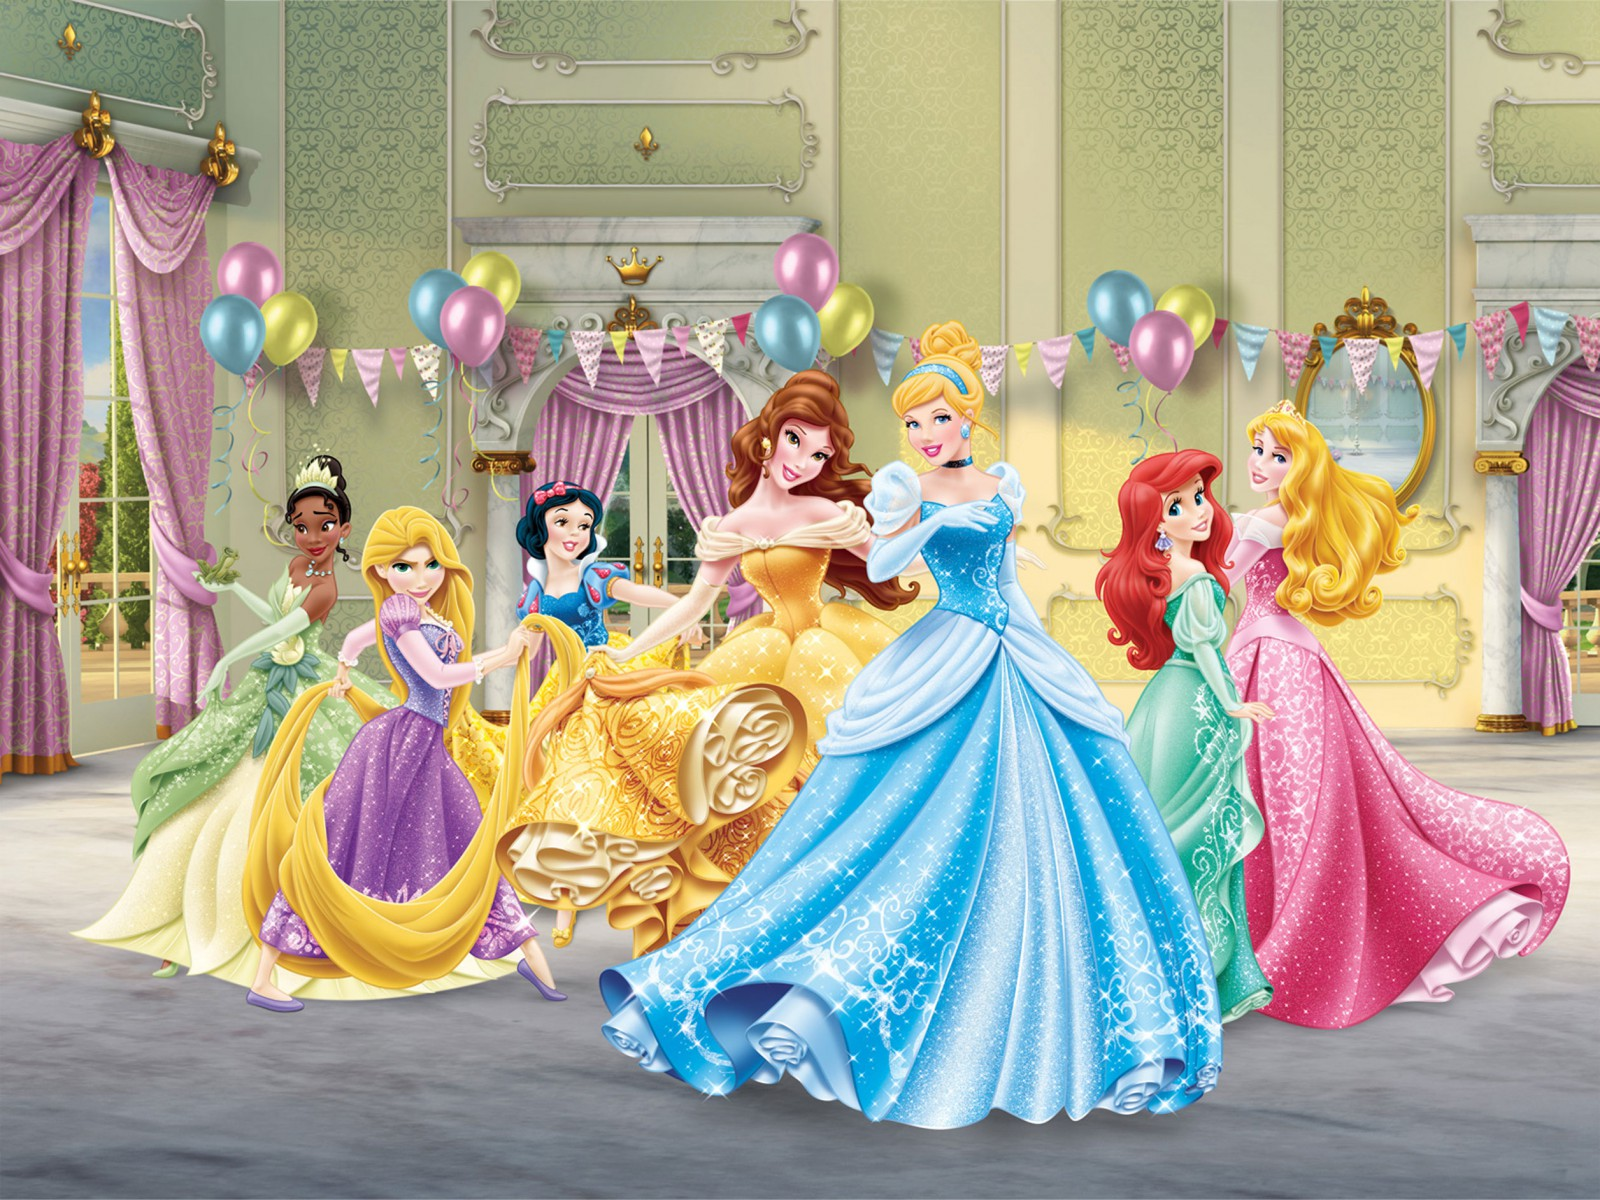 Xl photo wallpaper mural disney princess cindarella for Disney princess wall mural